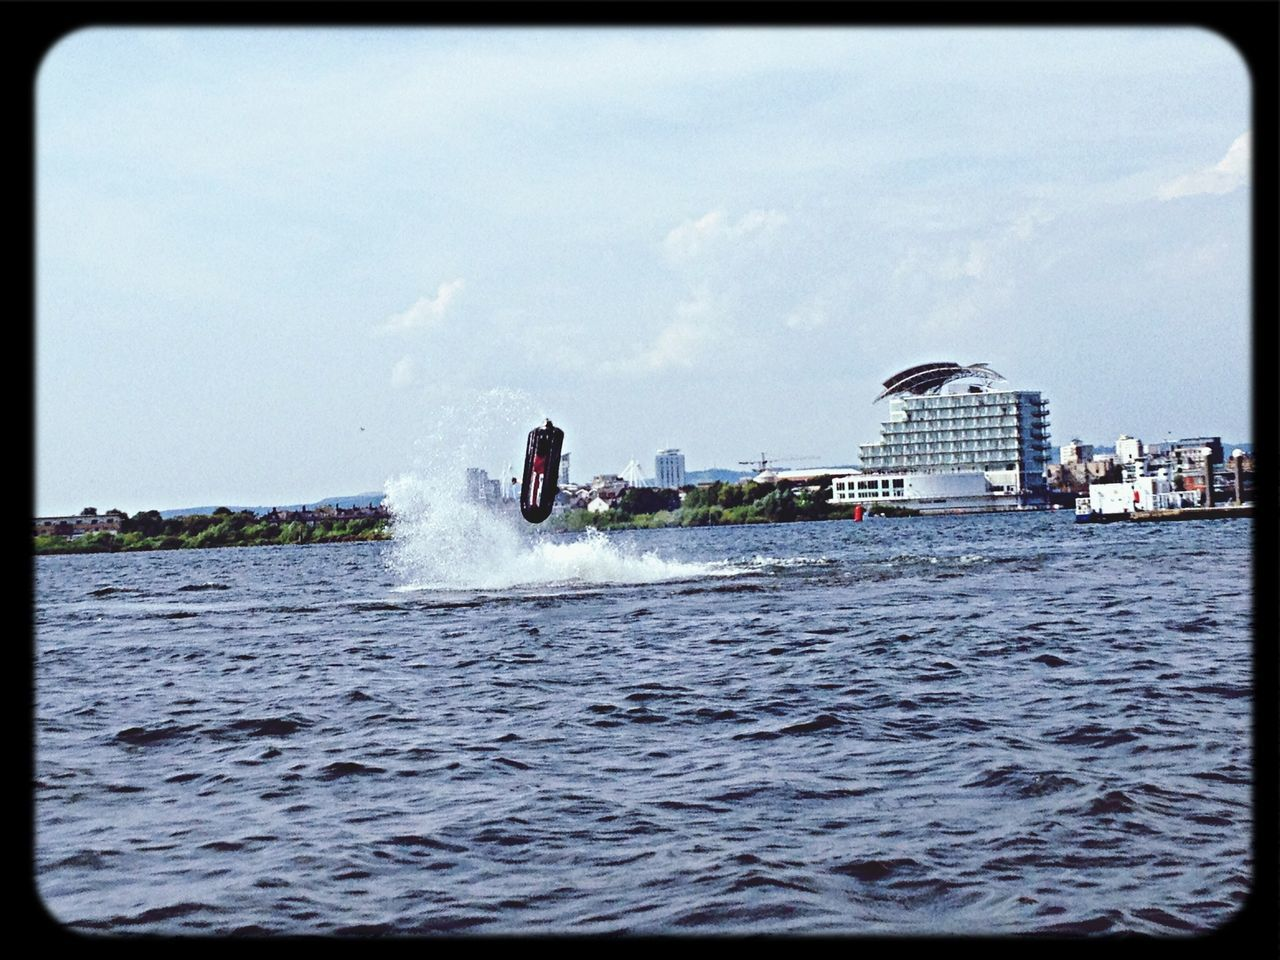 Awesome Jetsky display :))